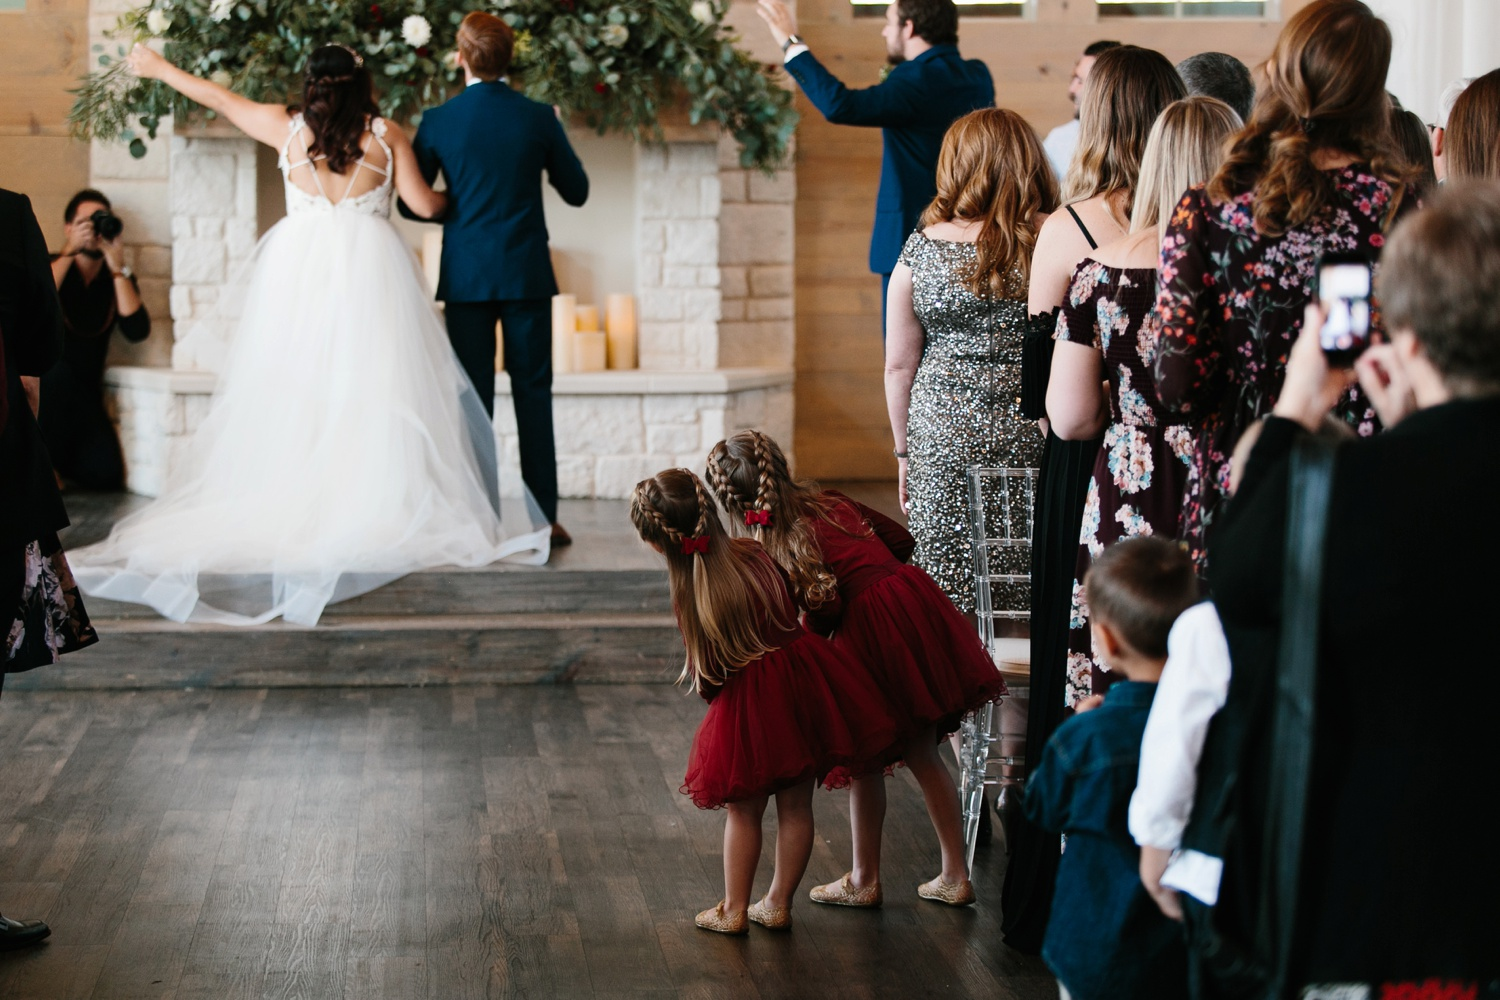 Grant + Lysette | a vibrant, deep burgundy and navy, and mixed metals wedding at Hidden Pines Chapel by North Texas Wedding Photographer Rachel Meagan Photography 074